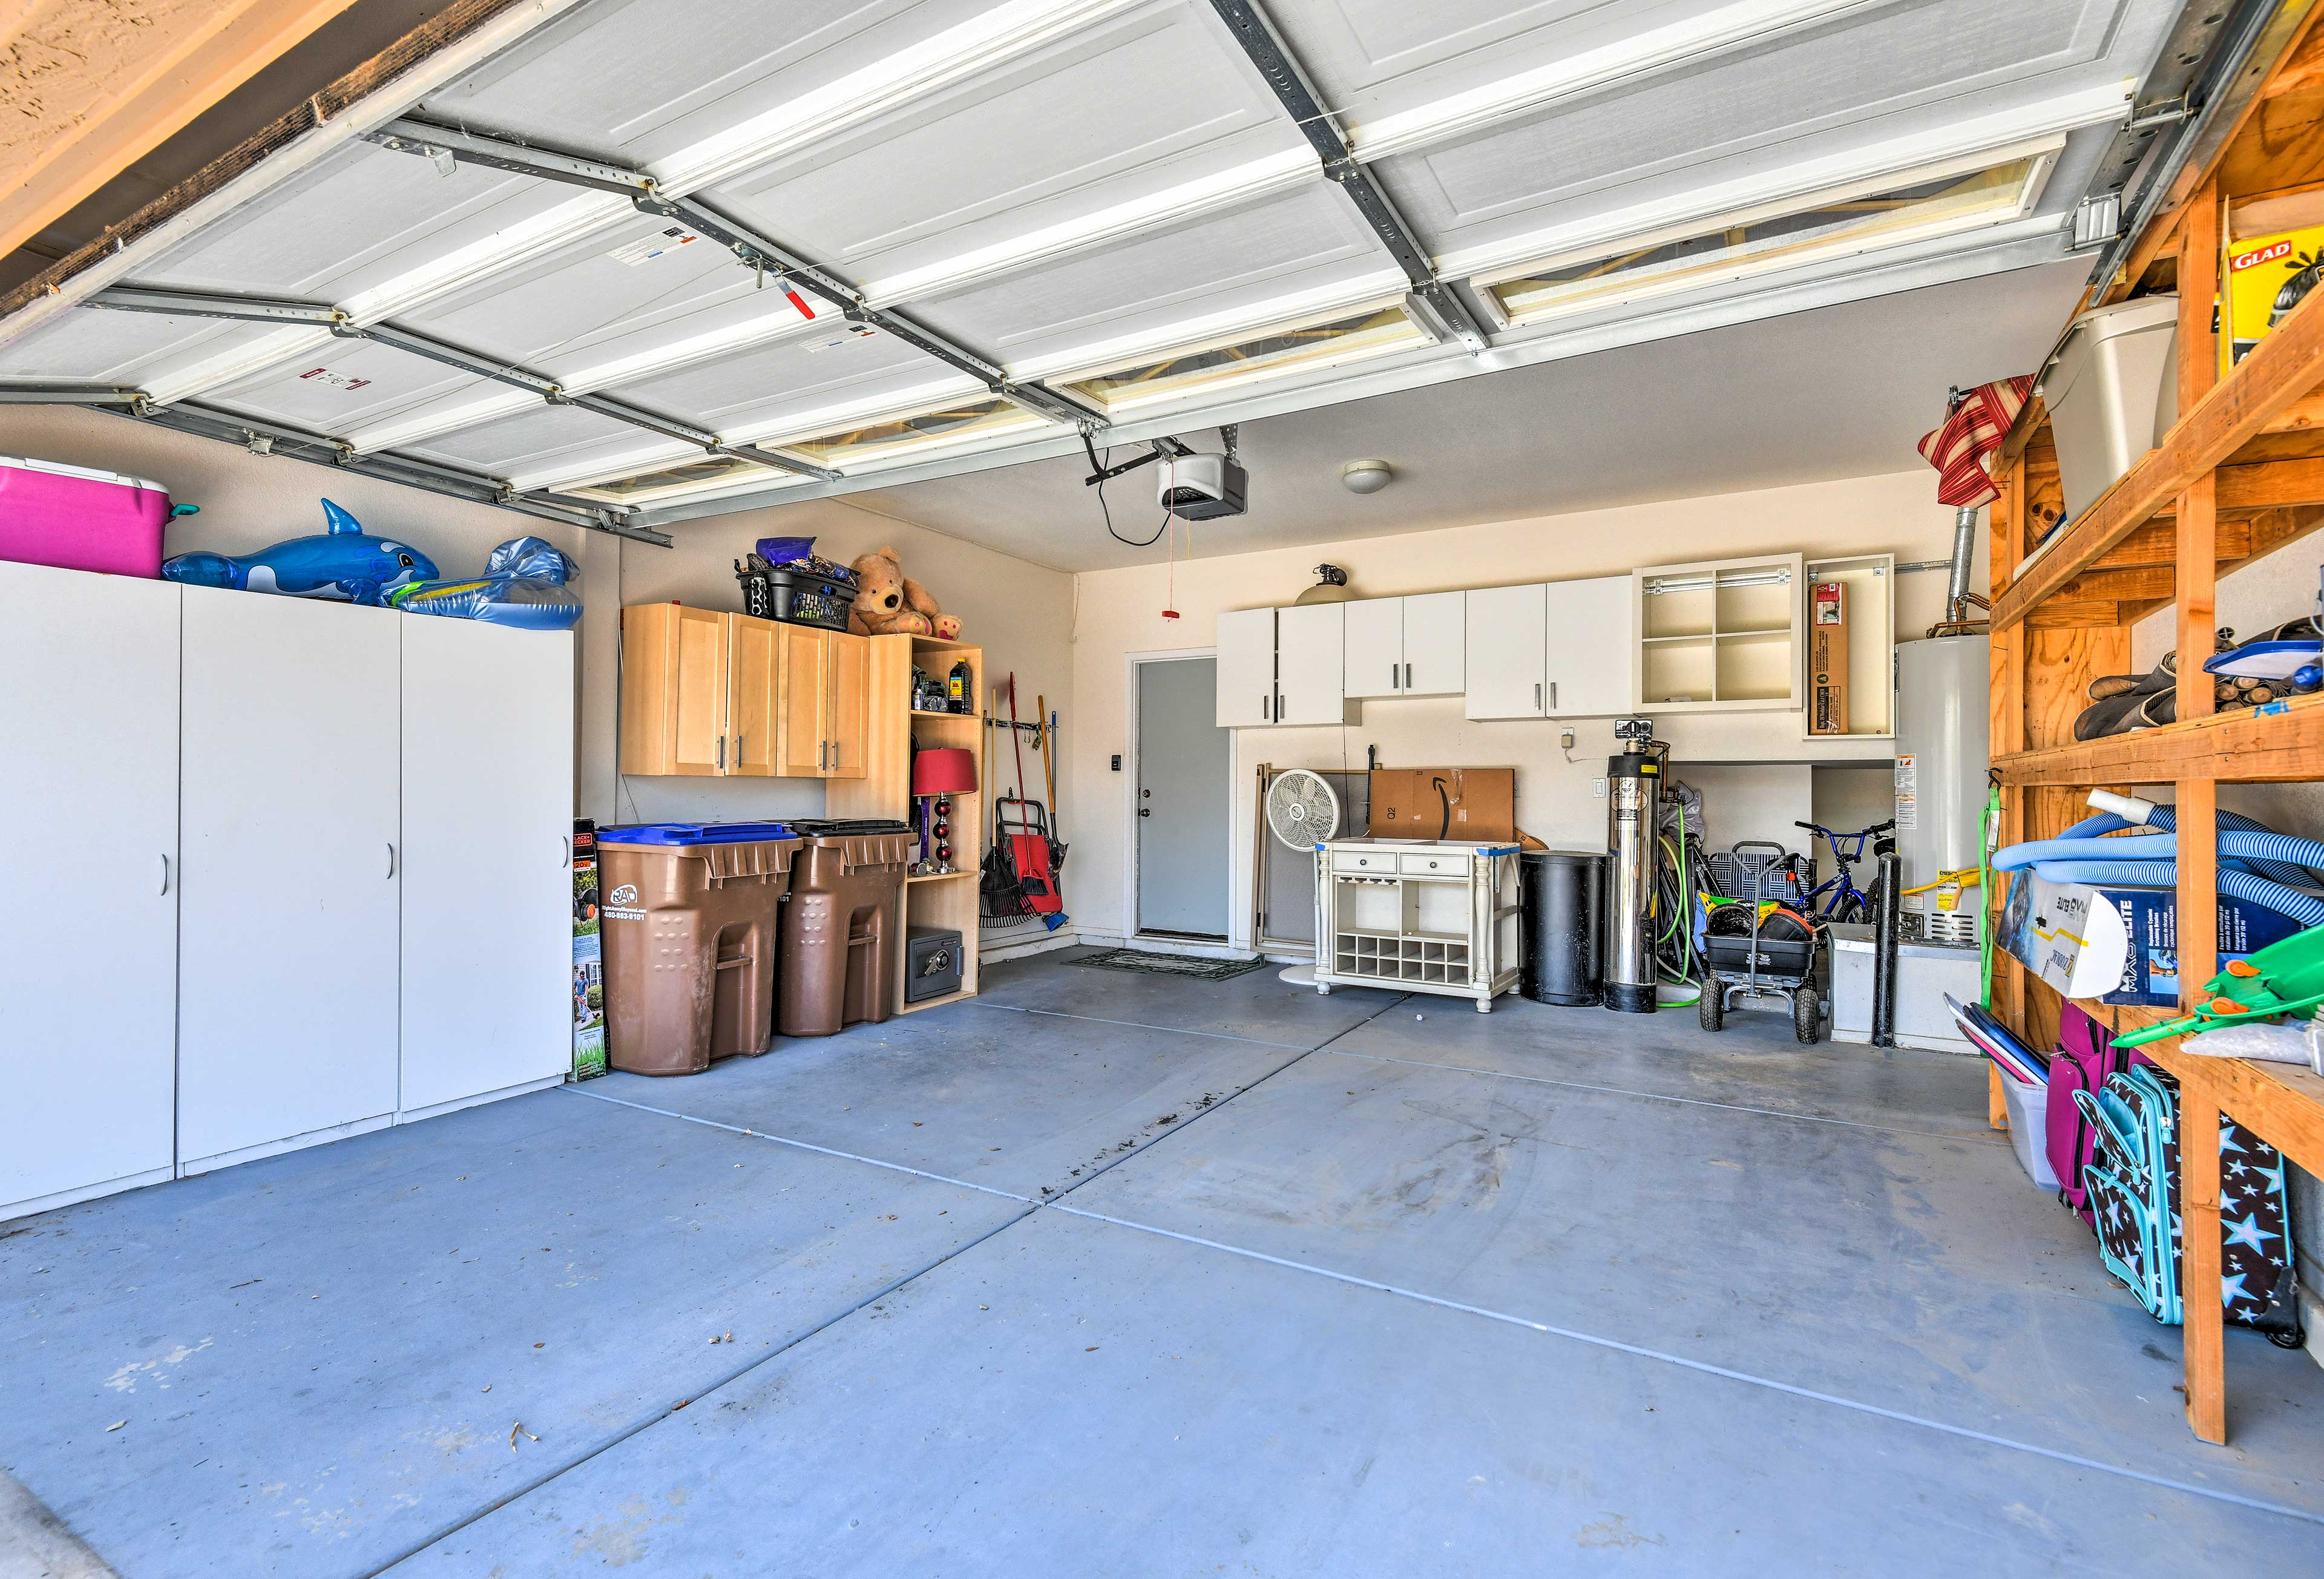 Make yourself home to plenty of parking and storage space in the garage.